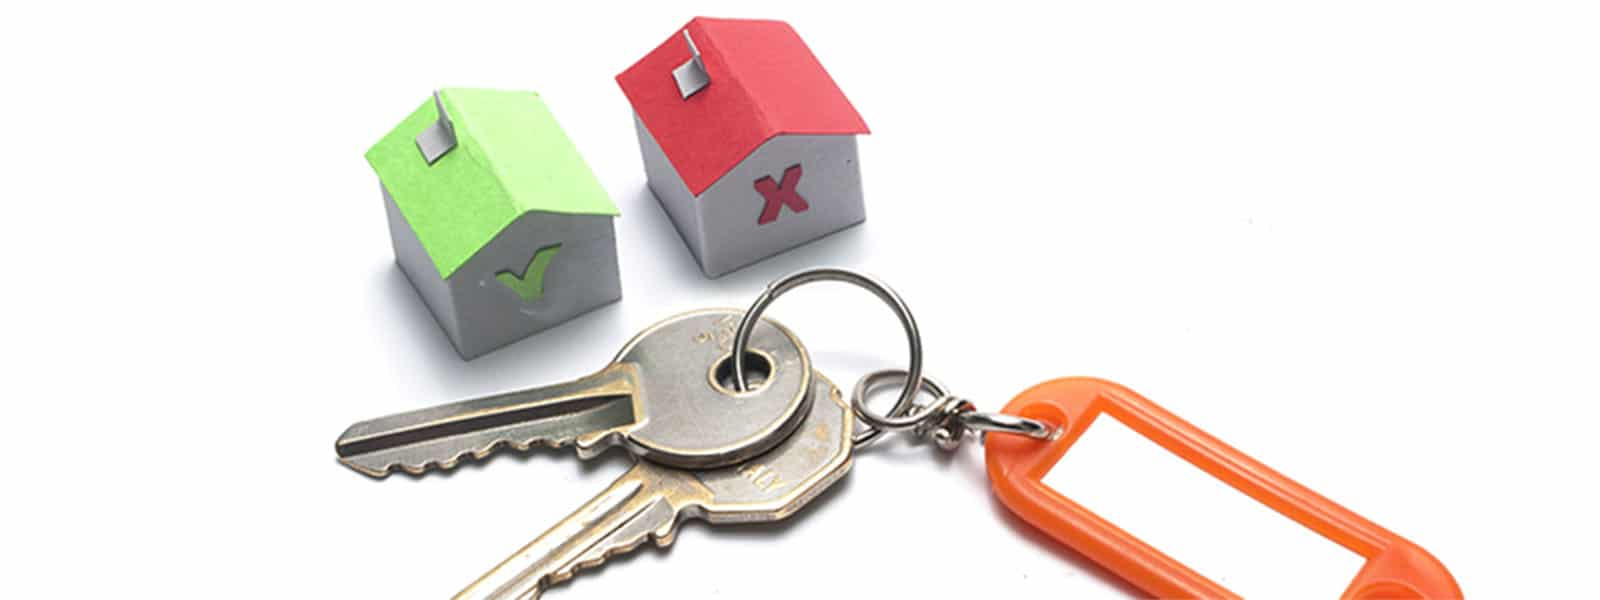 a green house with a check and a red house with an x near a set of keys and keychain